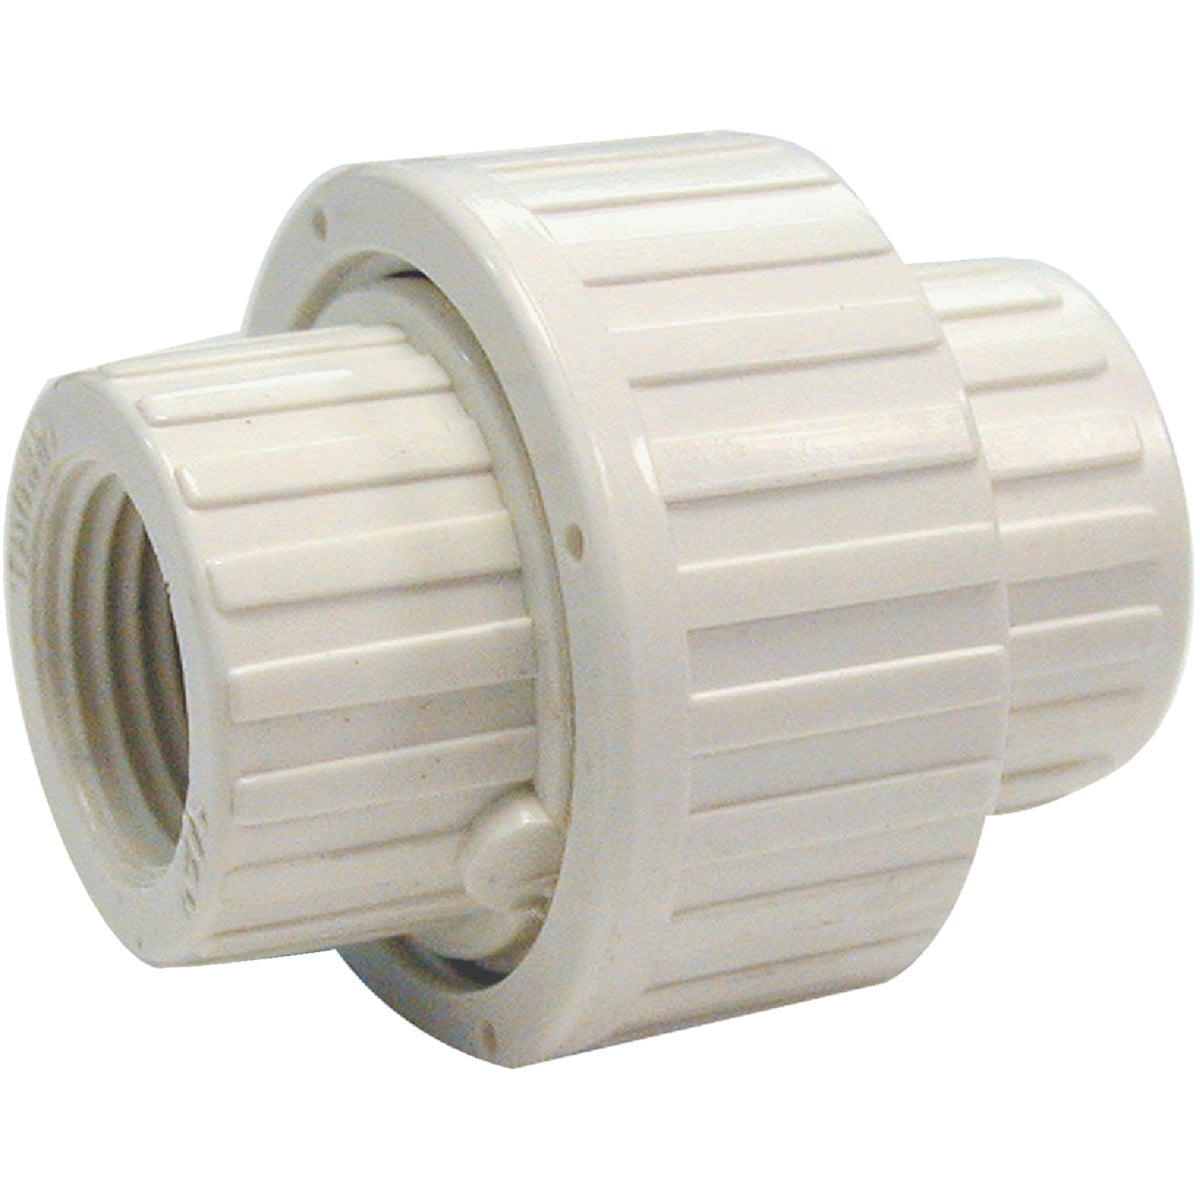 "WHT 2"" FIP PVC UNION - 164-138 by Mueller B K"